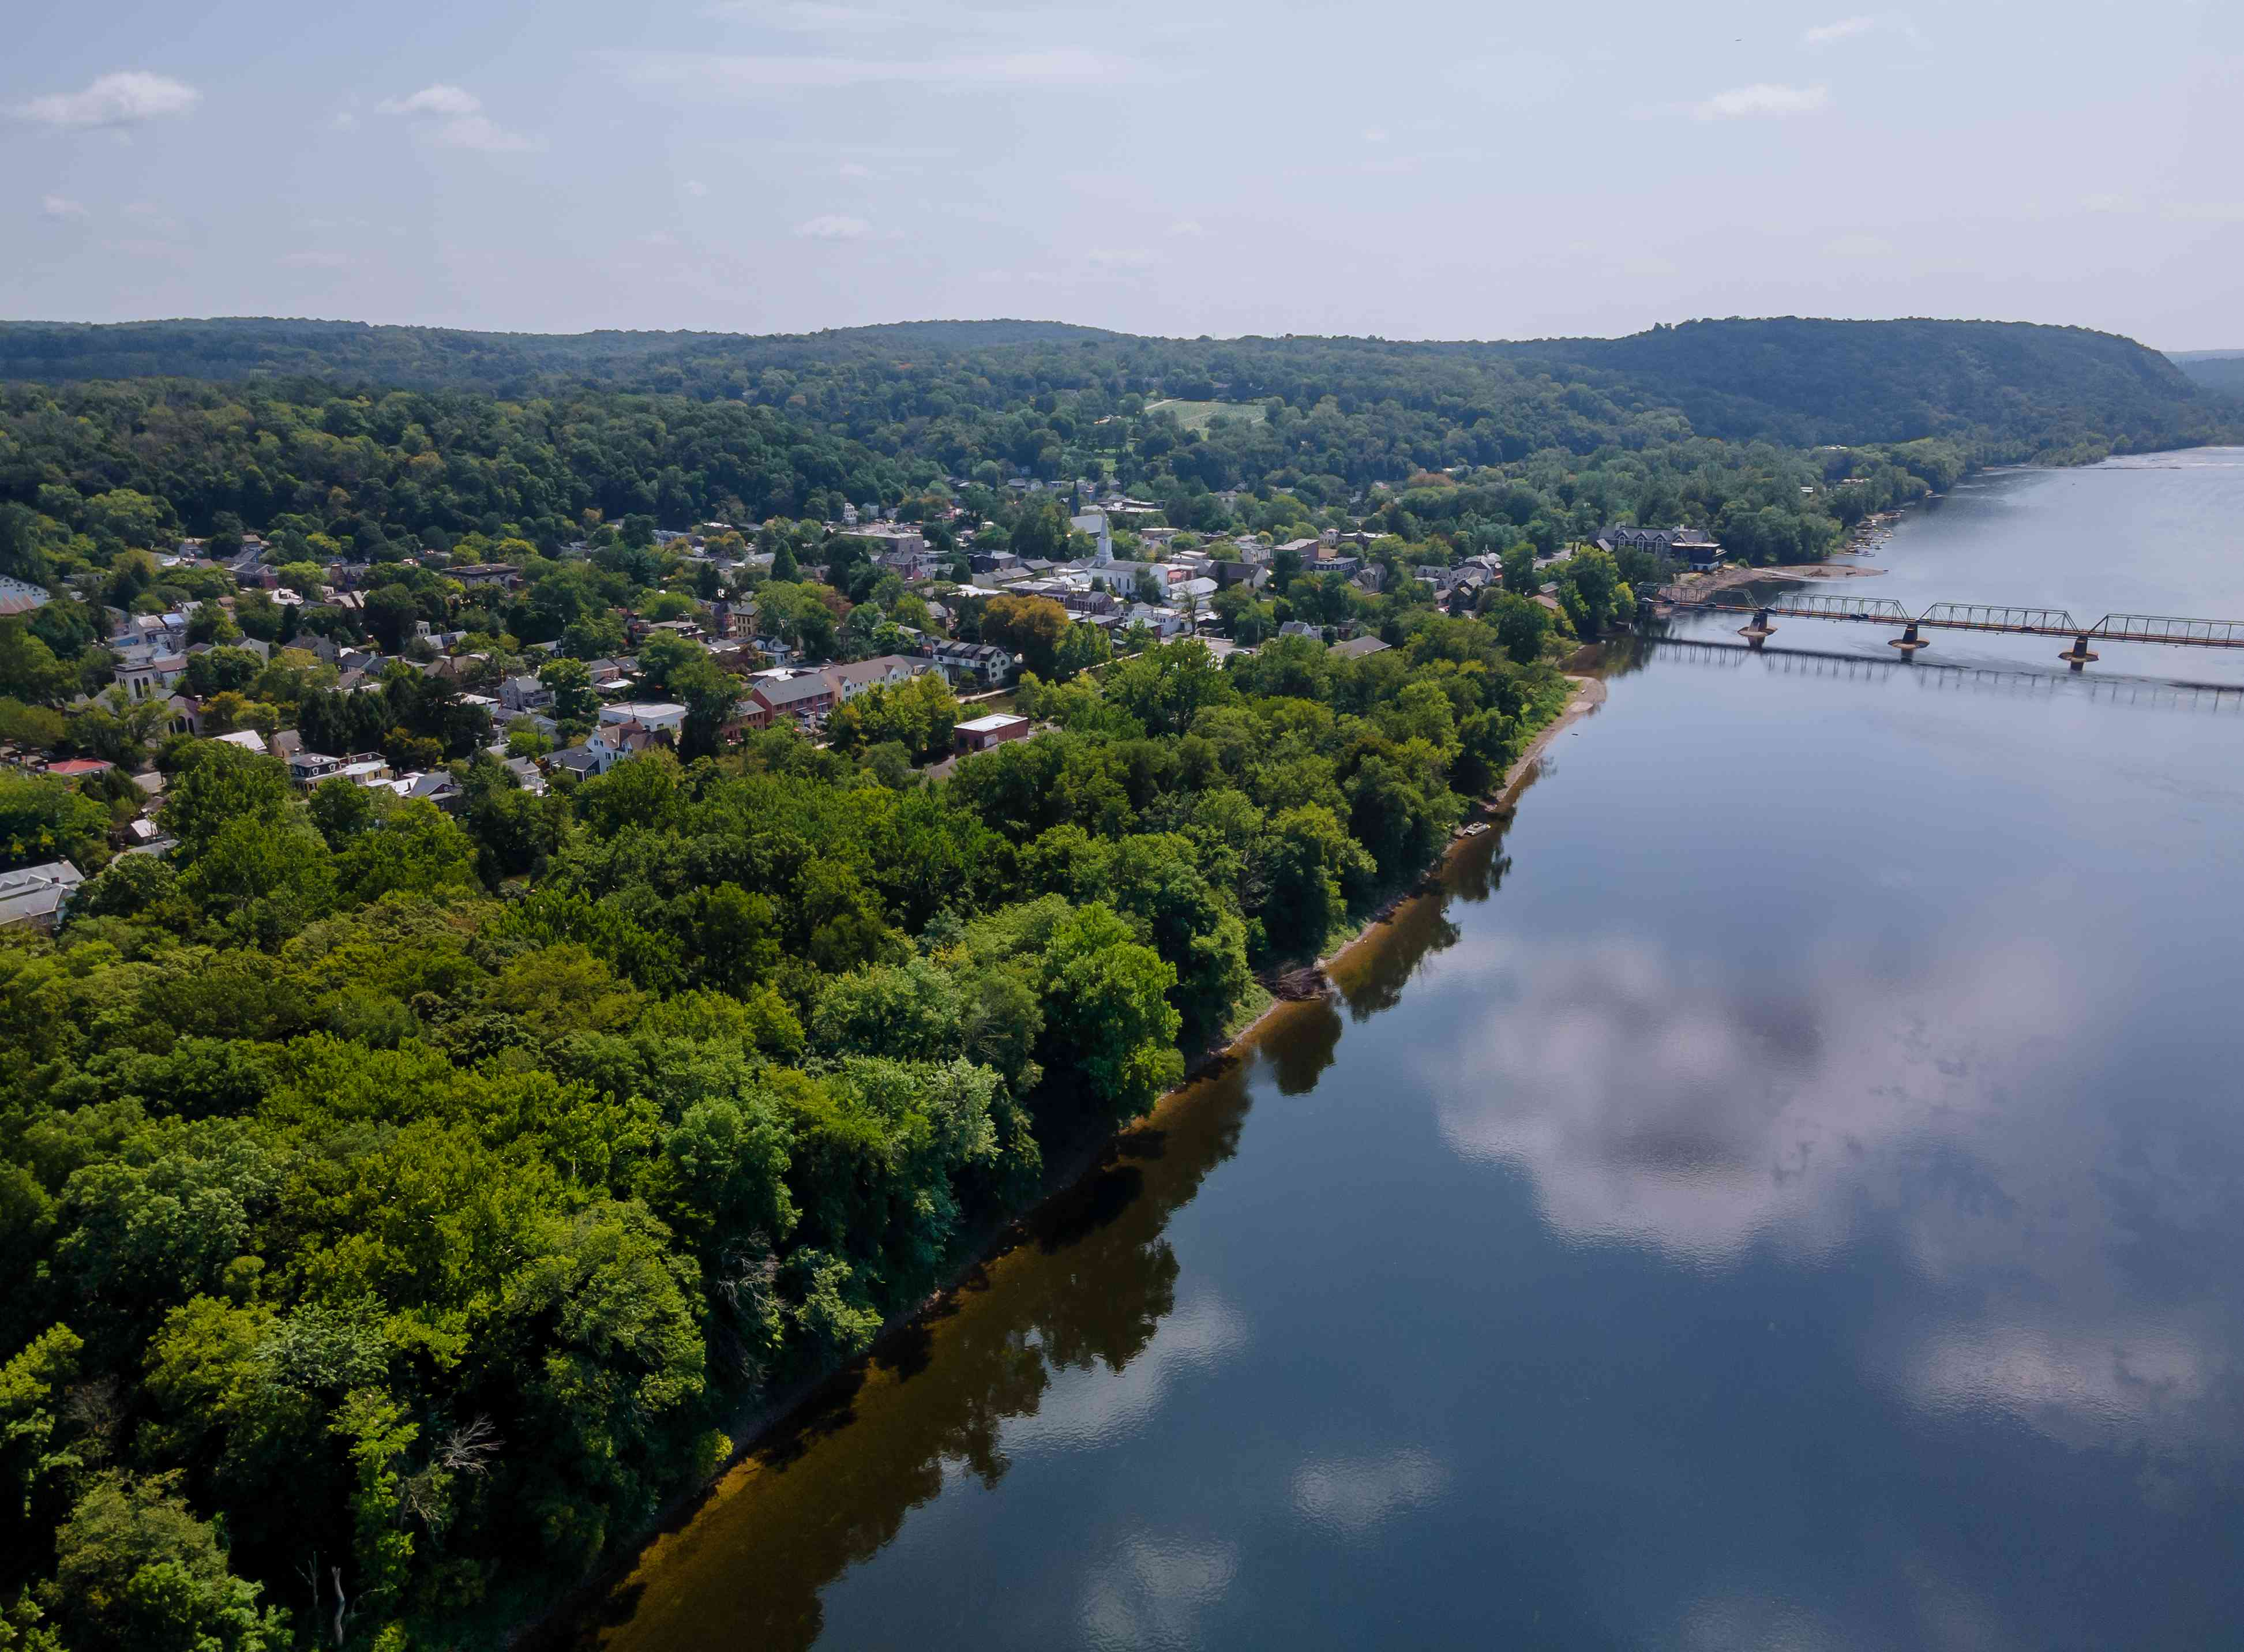 Aerial overhead of Delaware river landscape, American town of Lambertville New Jersey, view near small town historic New Hope Pennsylvania USA